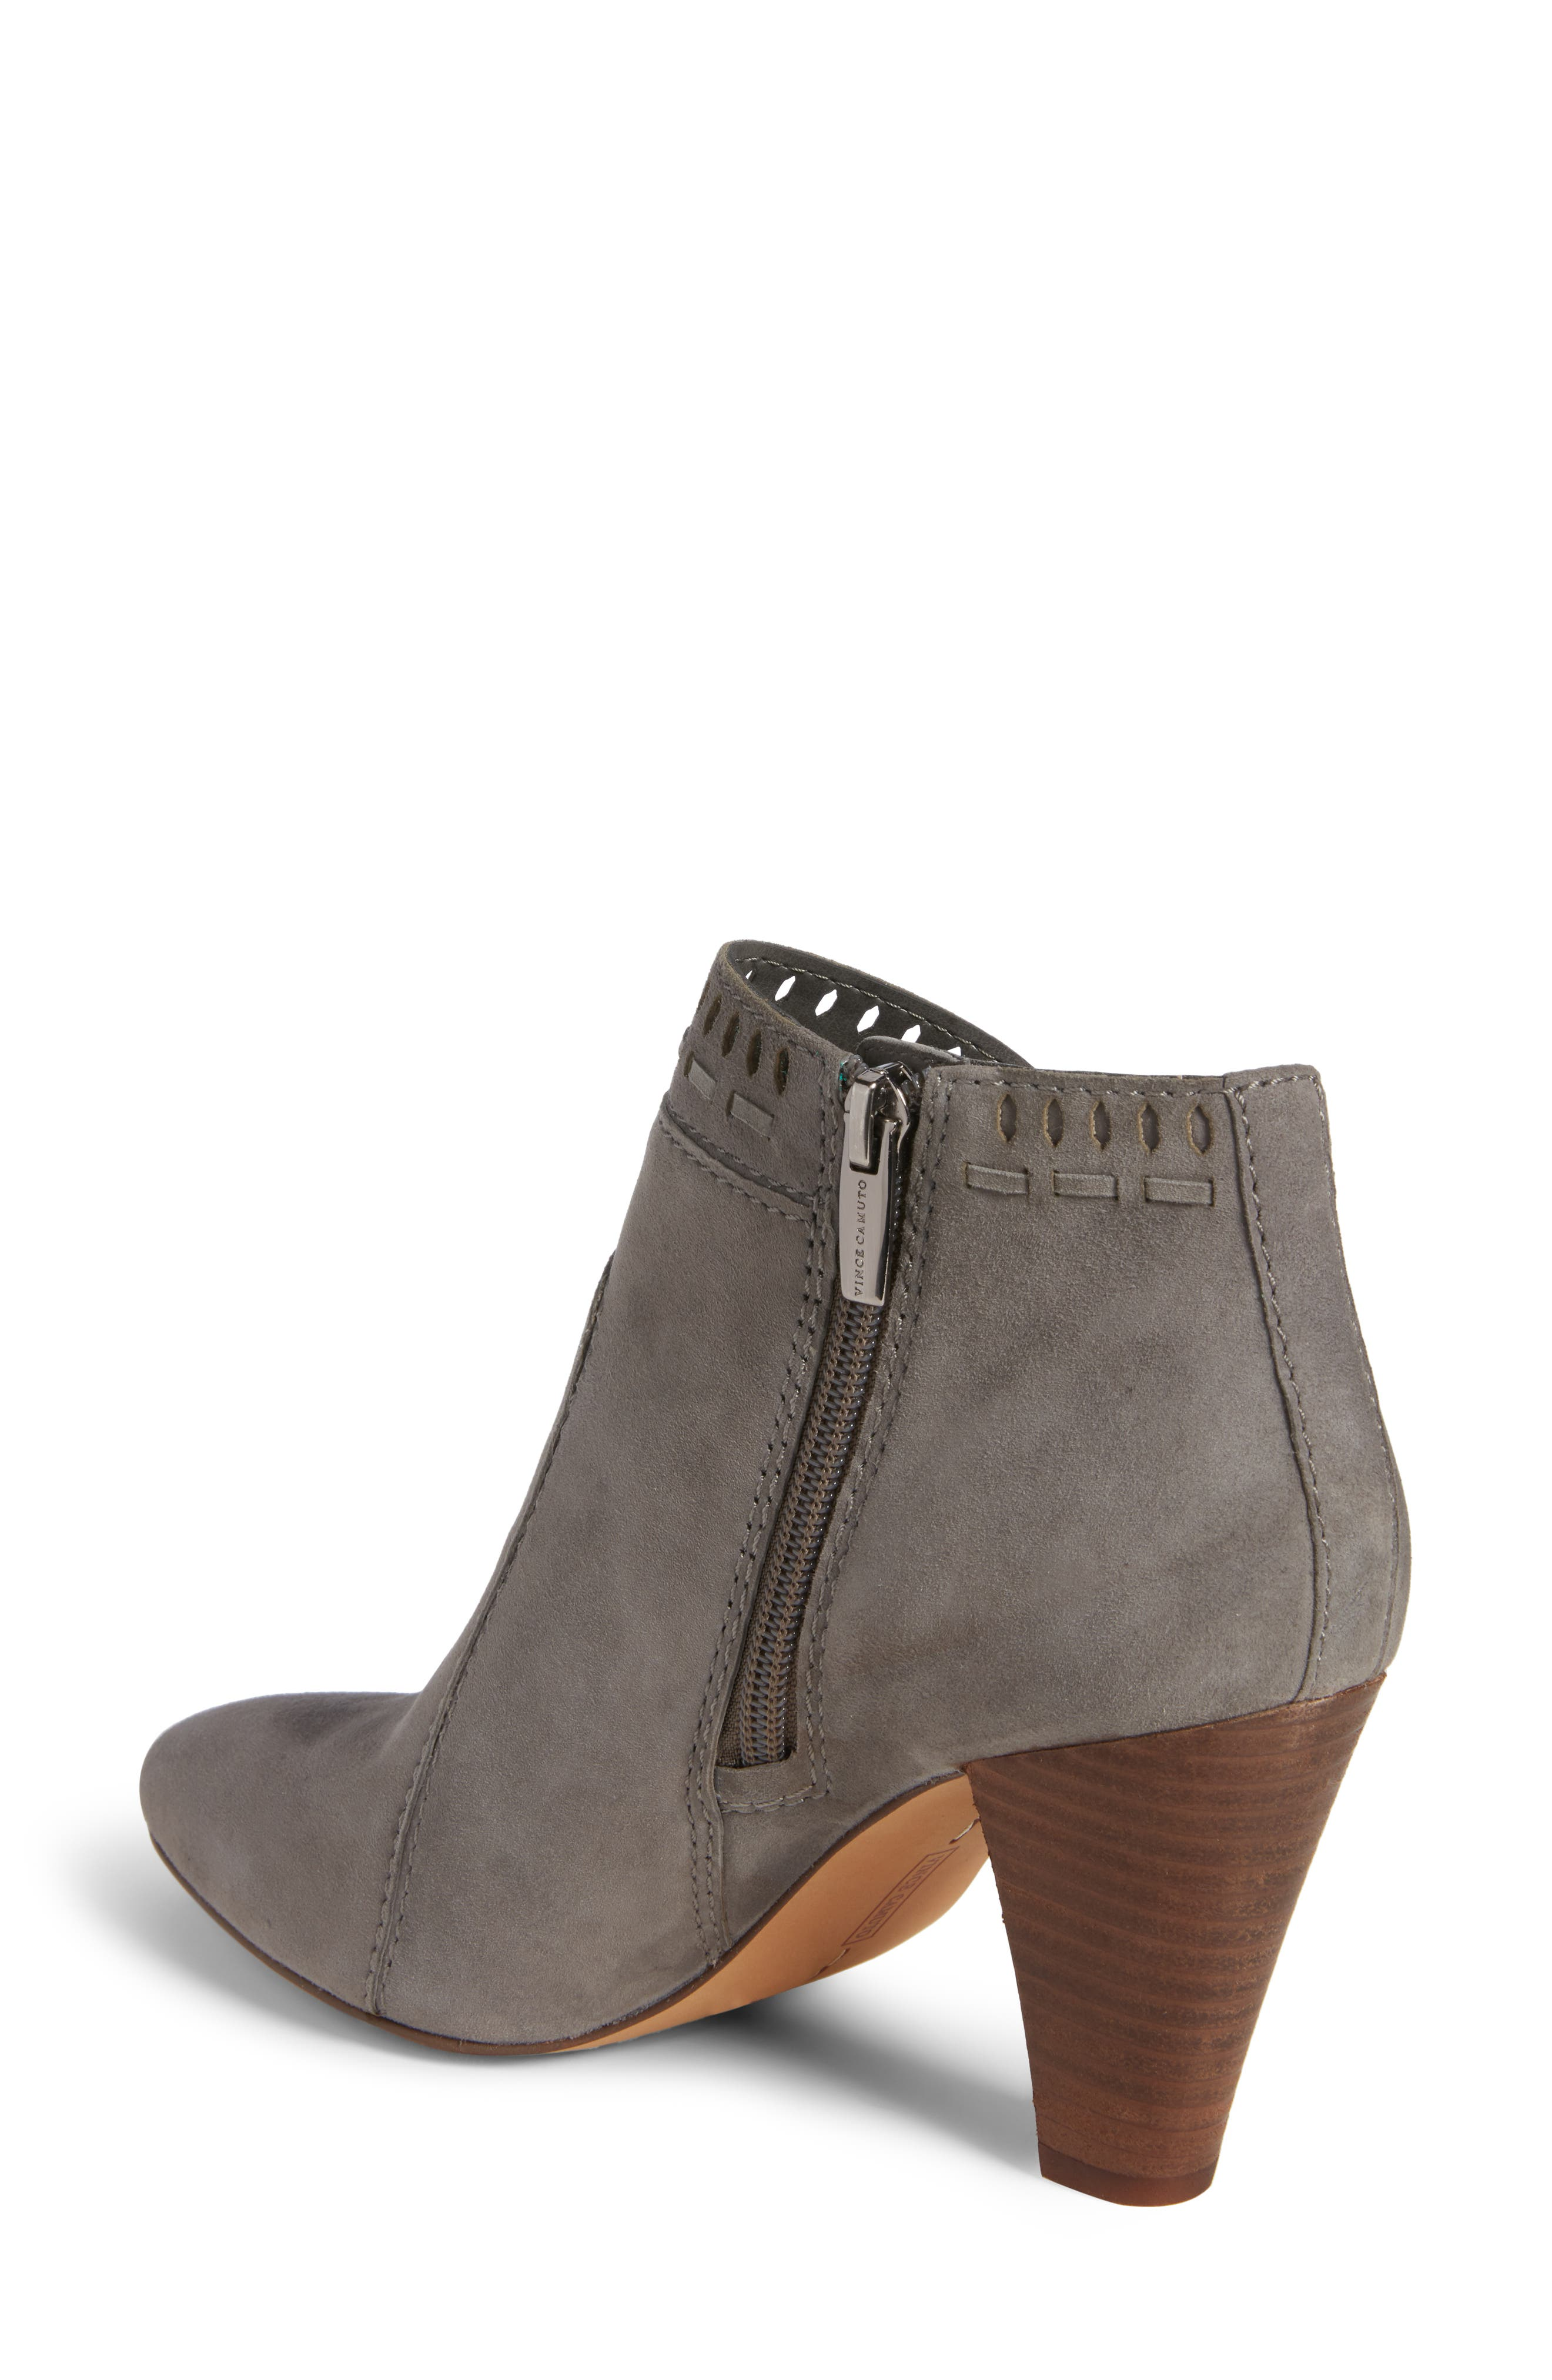 Reeista Bootie,                             Alternate thumbnail 2, color,                             GREYSTONE SUEDE